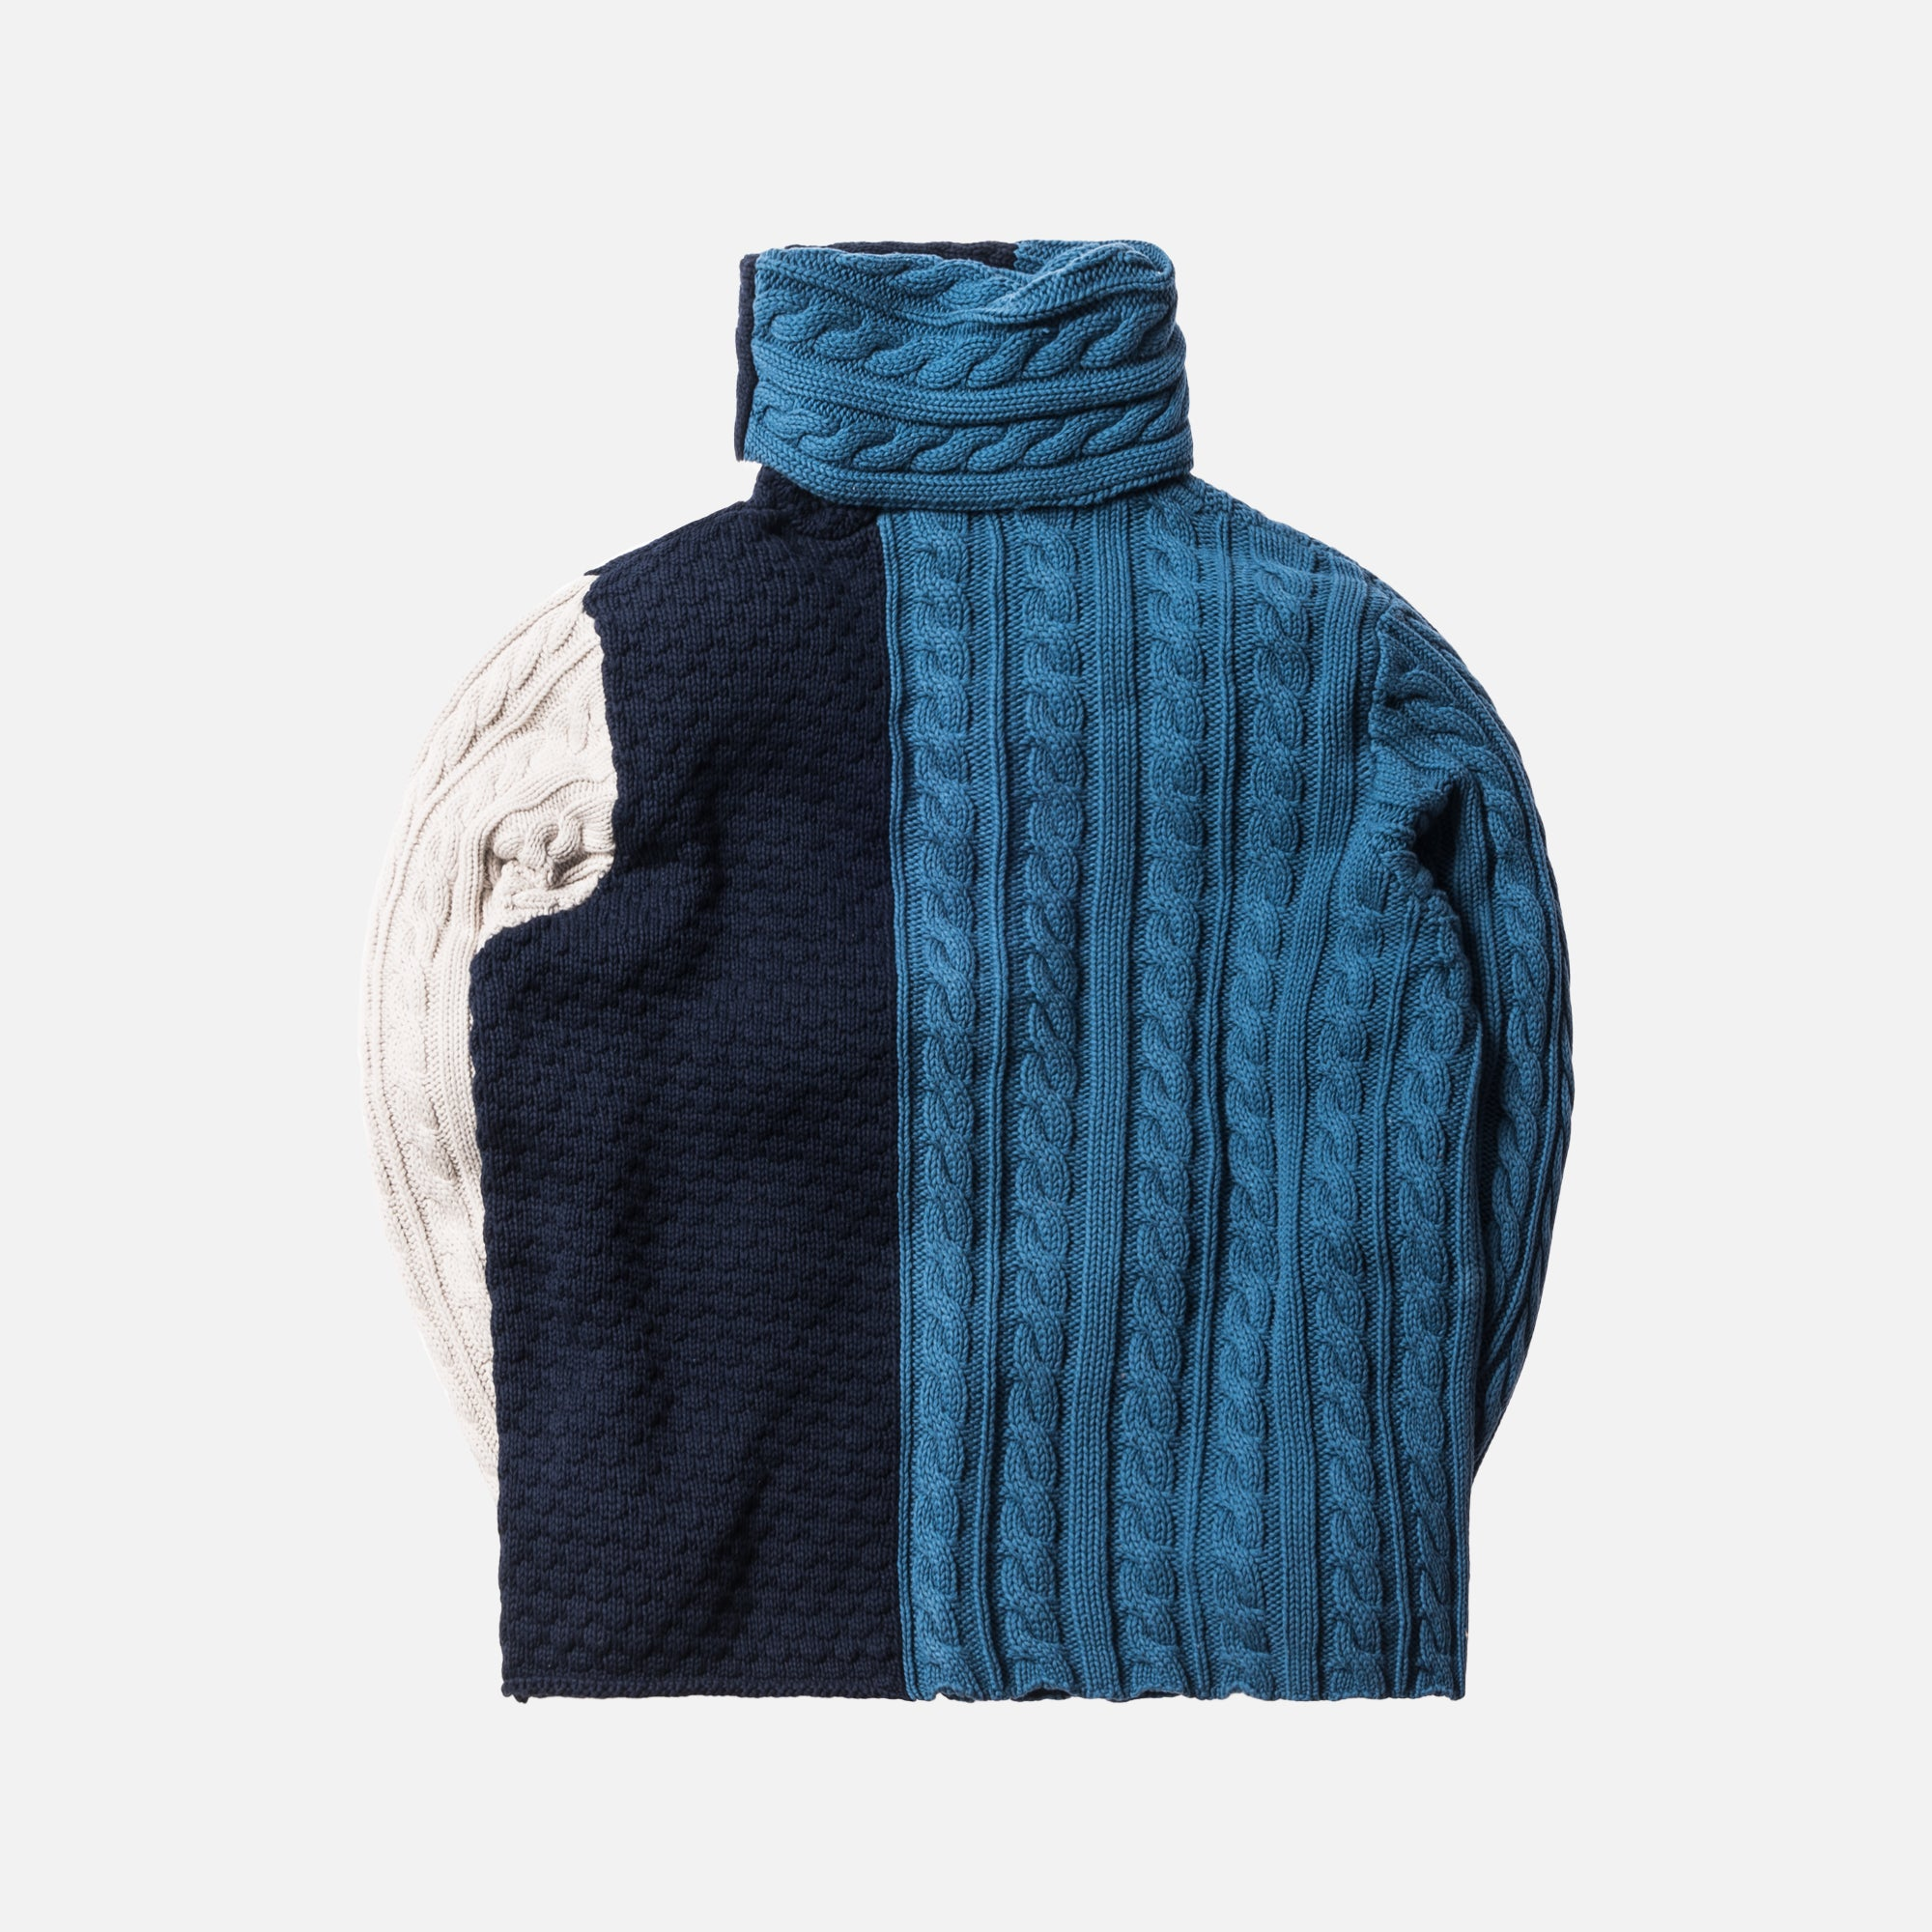 Kith Sherwood Knit Sweater - Indigo / Navy / Light Grey